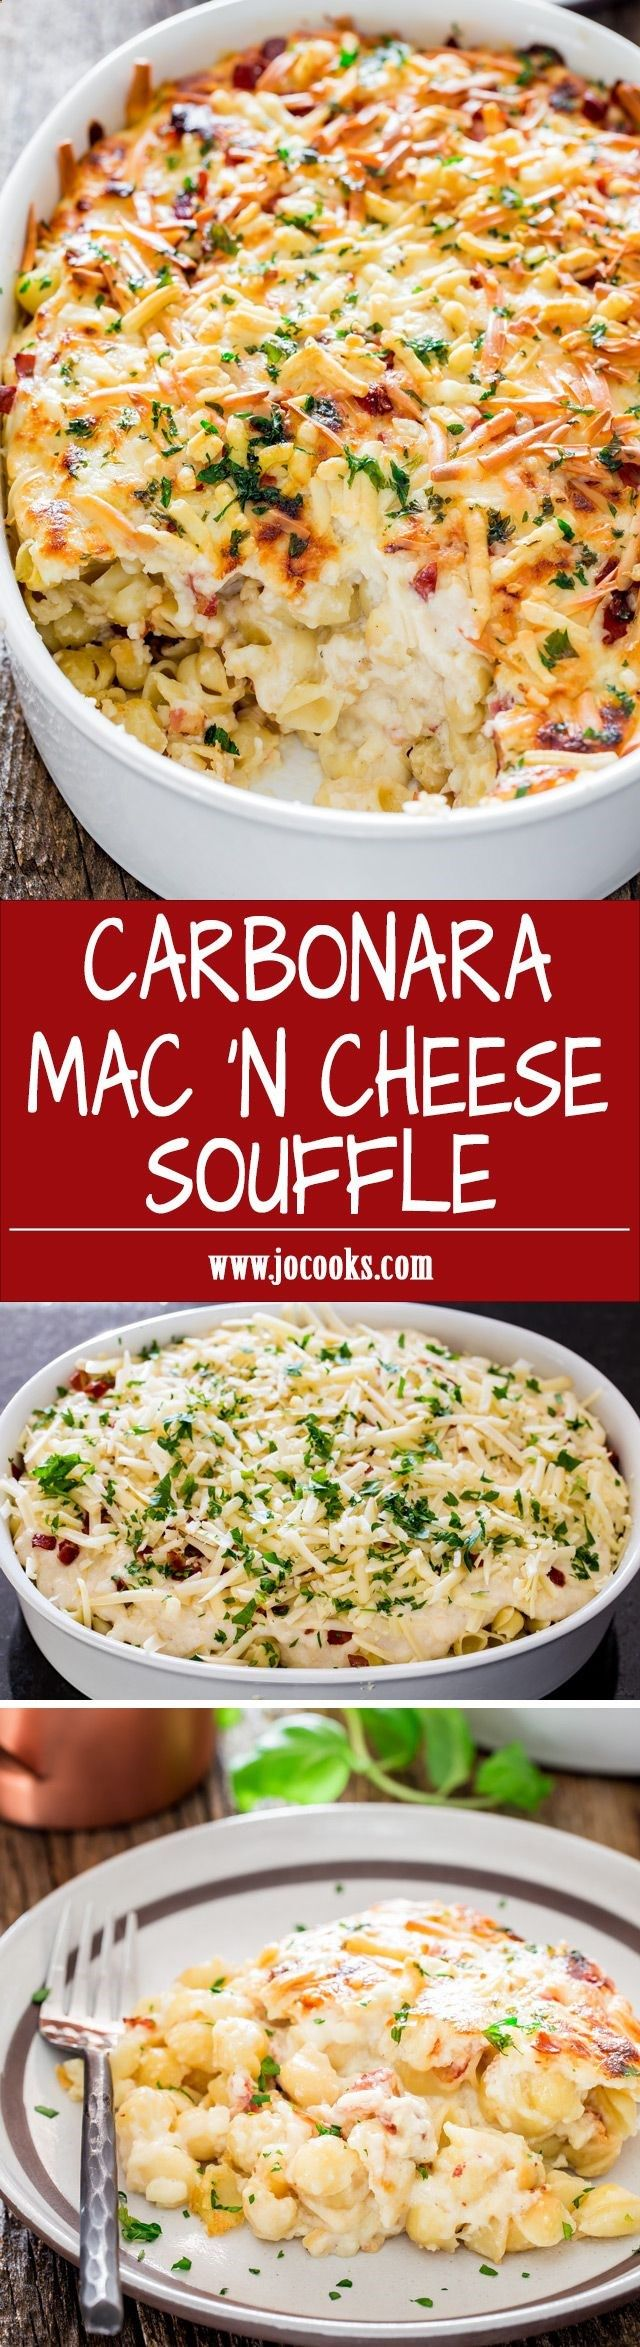 Carbonara Mac n Cheese Souffle - the end all of mac and cheese. Its fluffy, puffy, yummy, gooey, cheesy and creamy pasta with crispy pancetta. Need I say more?